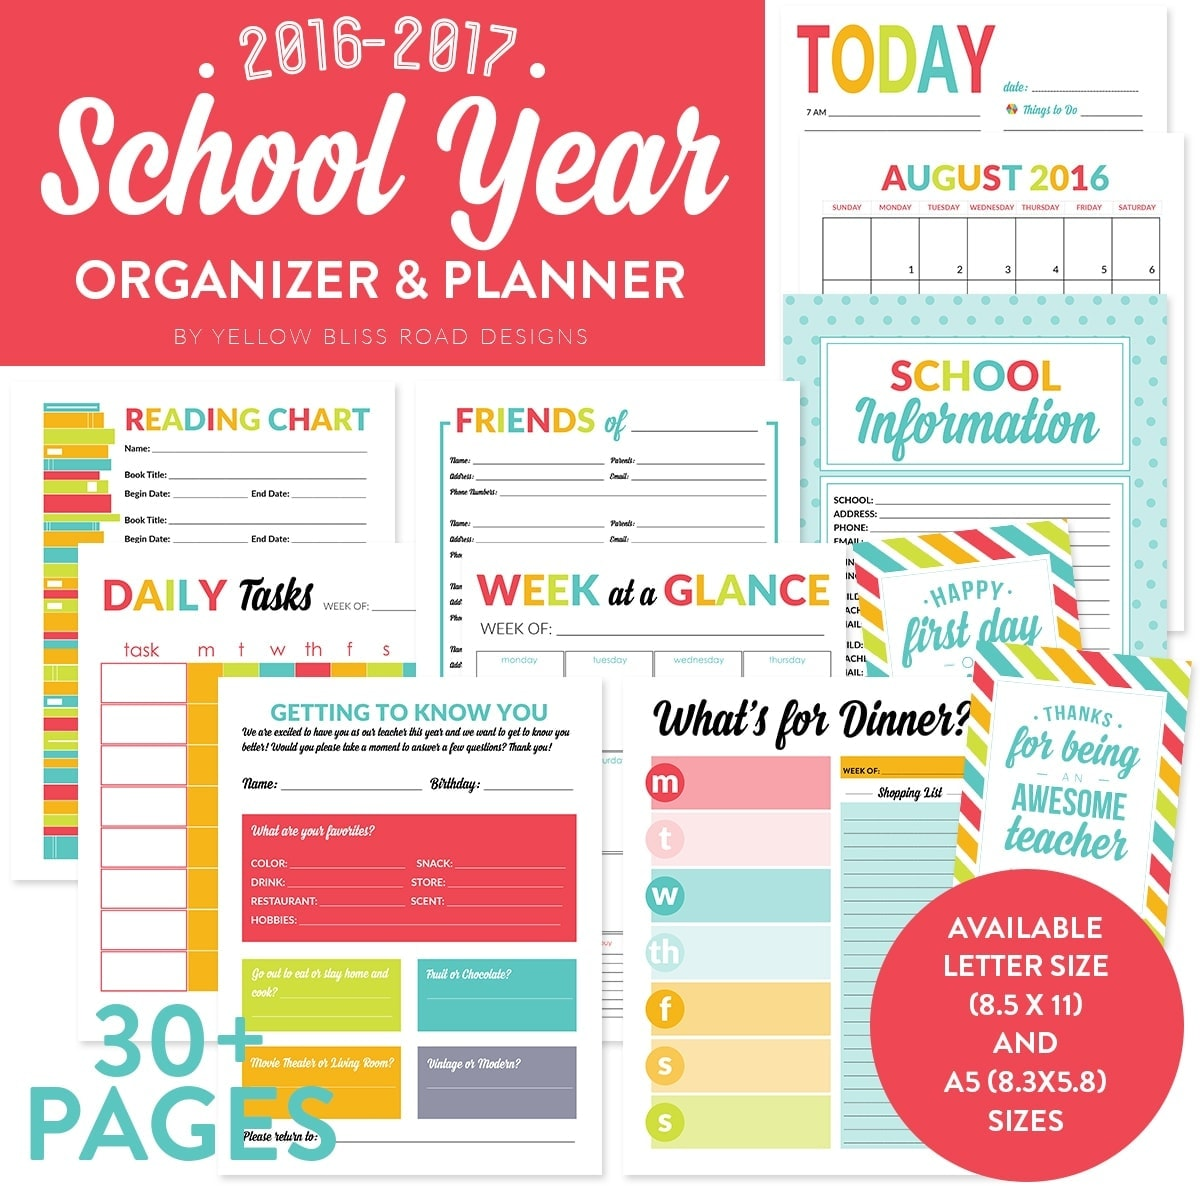 School Year Planner from Yellow Bliss Road Designs